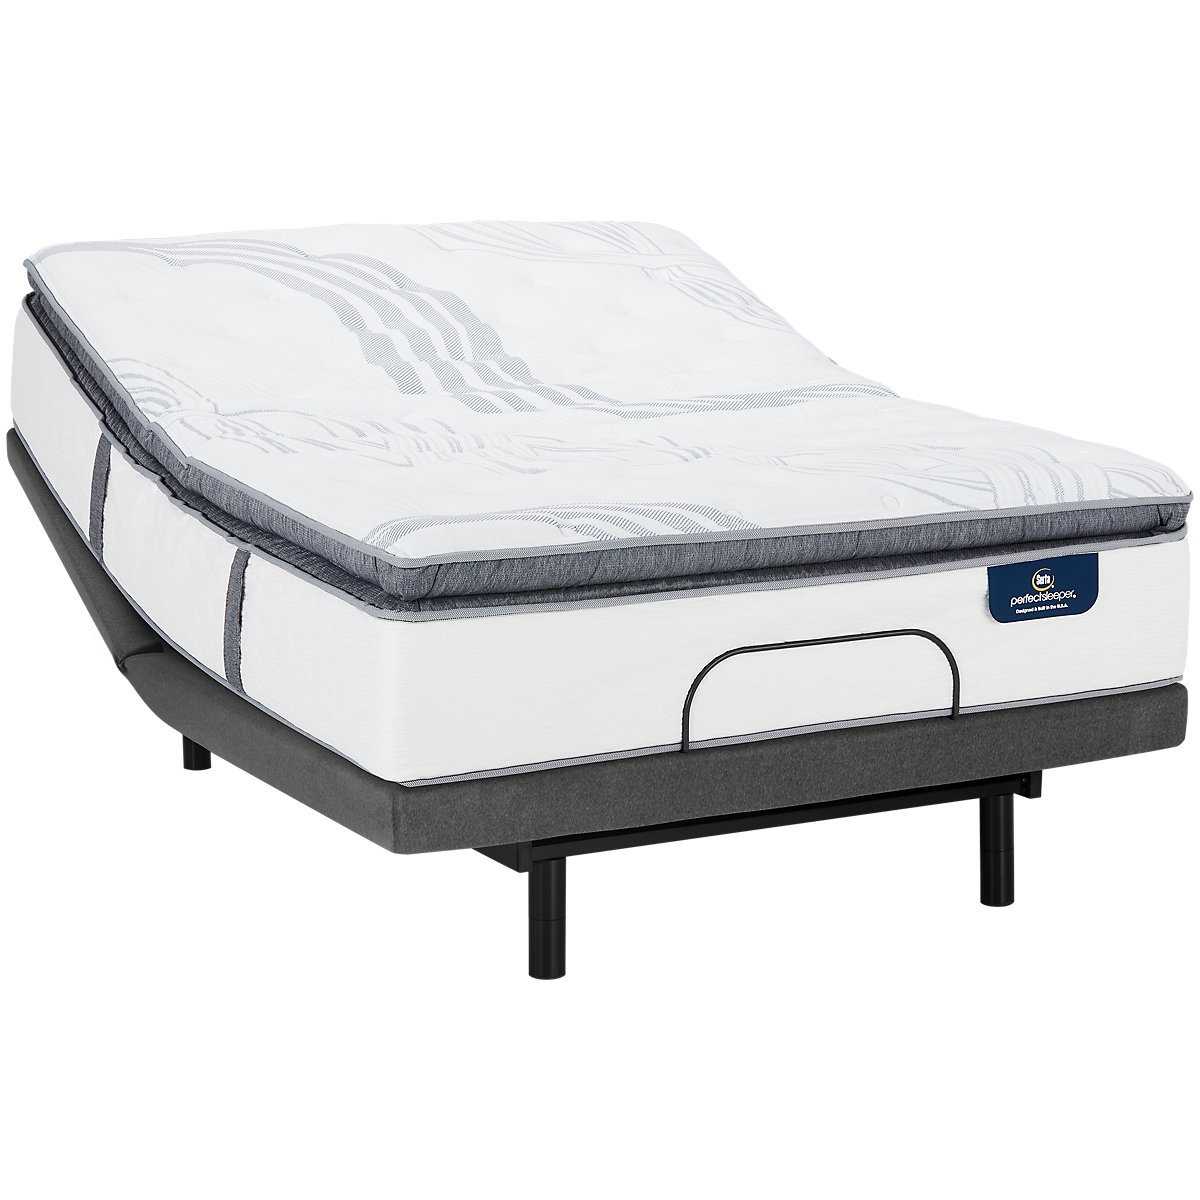 Serta Perfect Sleeper Ridgley Plush Select Adjustable Mattress Set